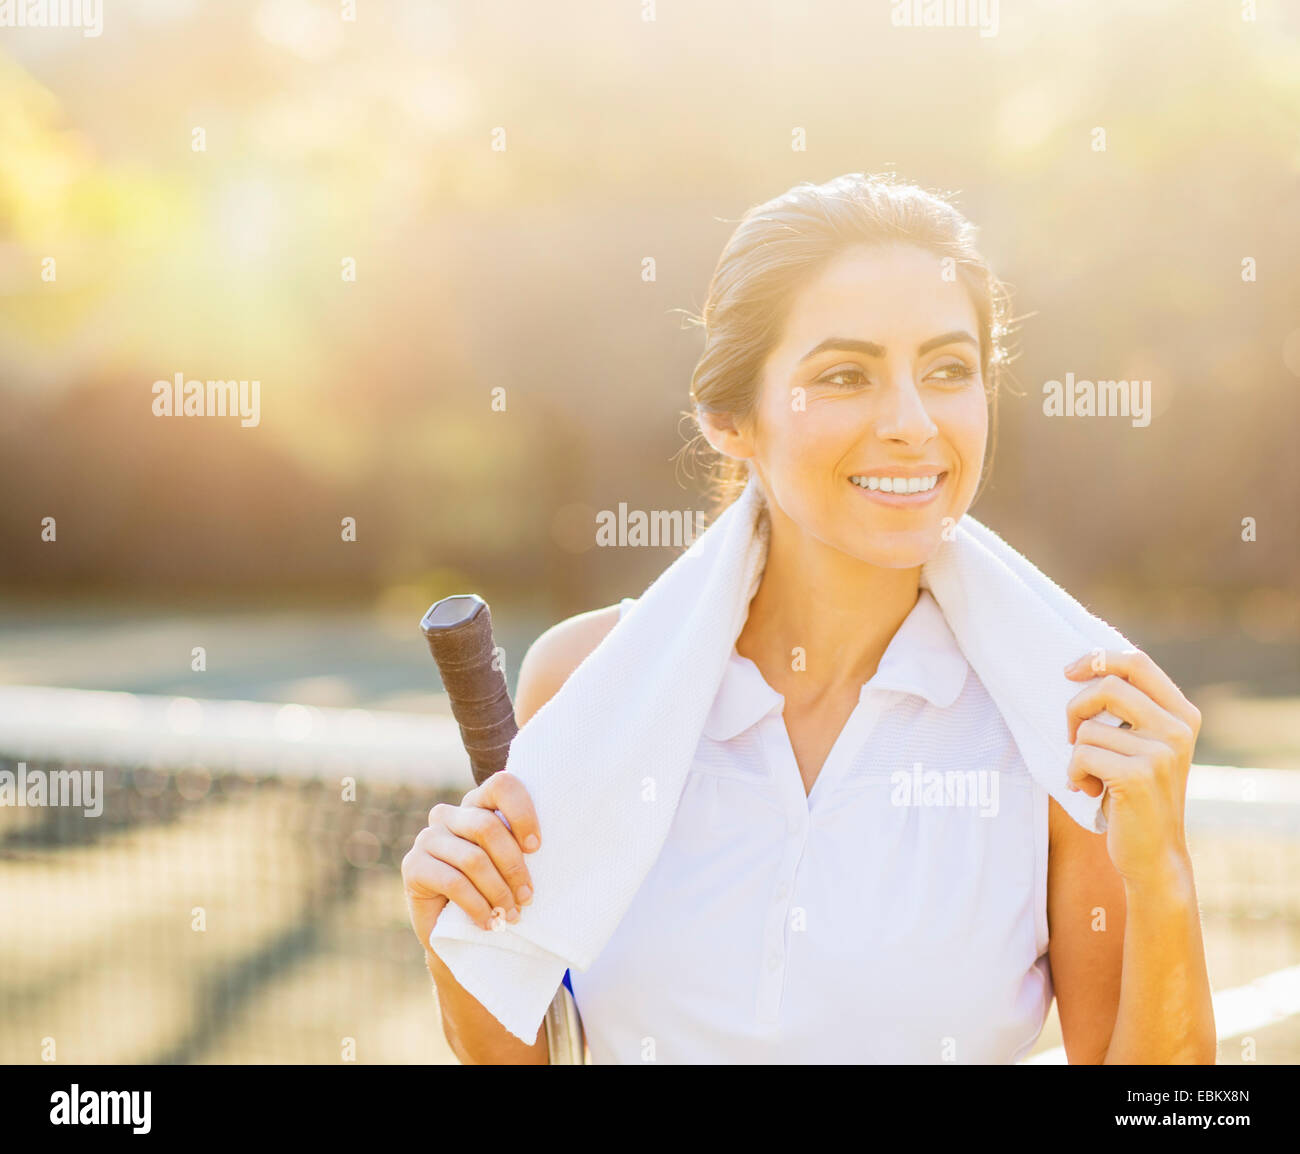 Portrait of smiling young woman with towel et raquette de tennis Photo Stock